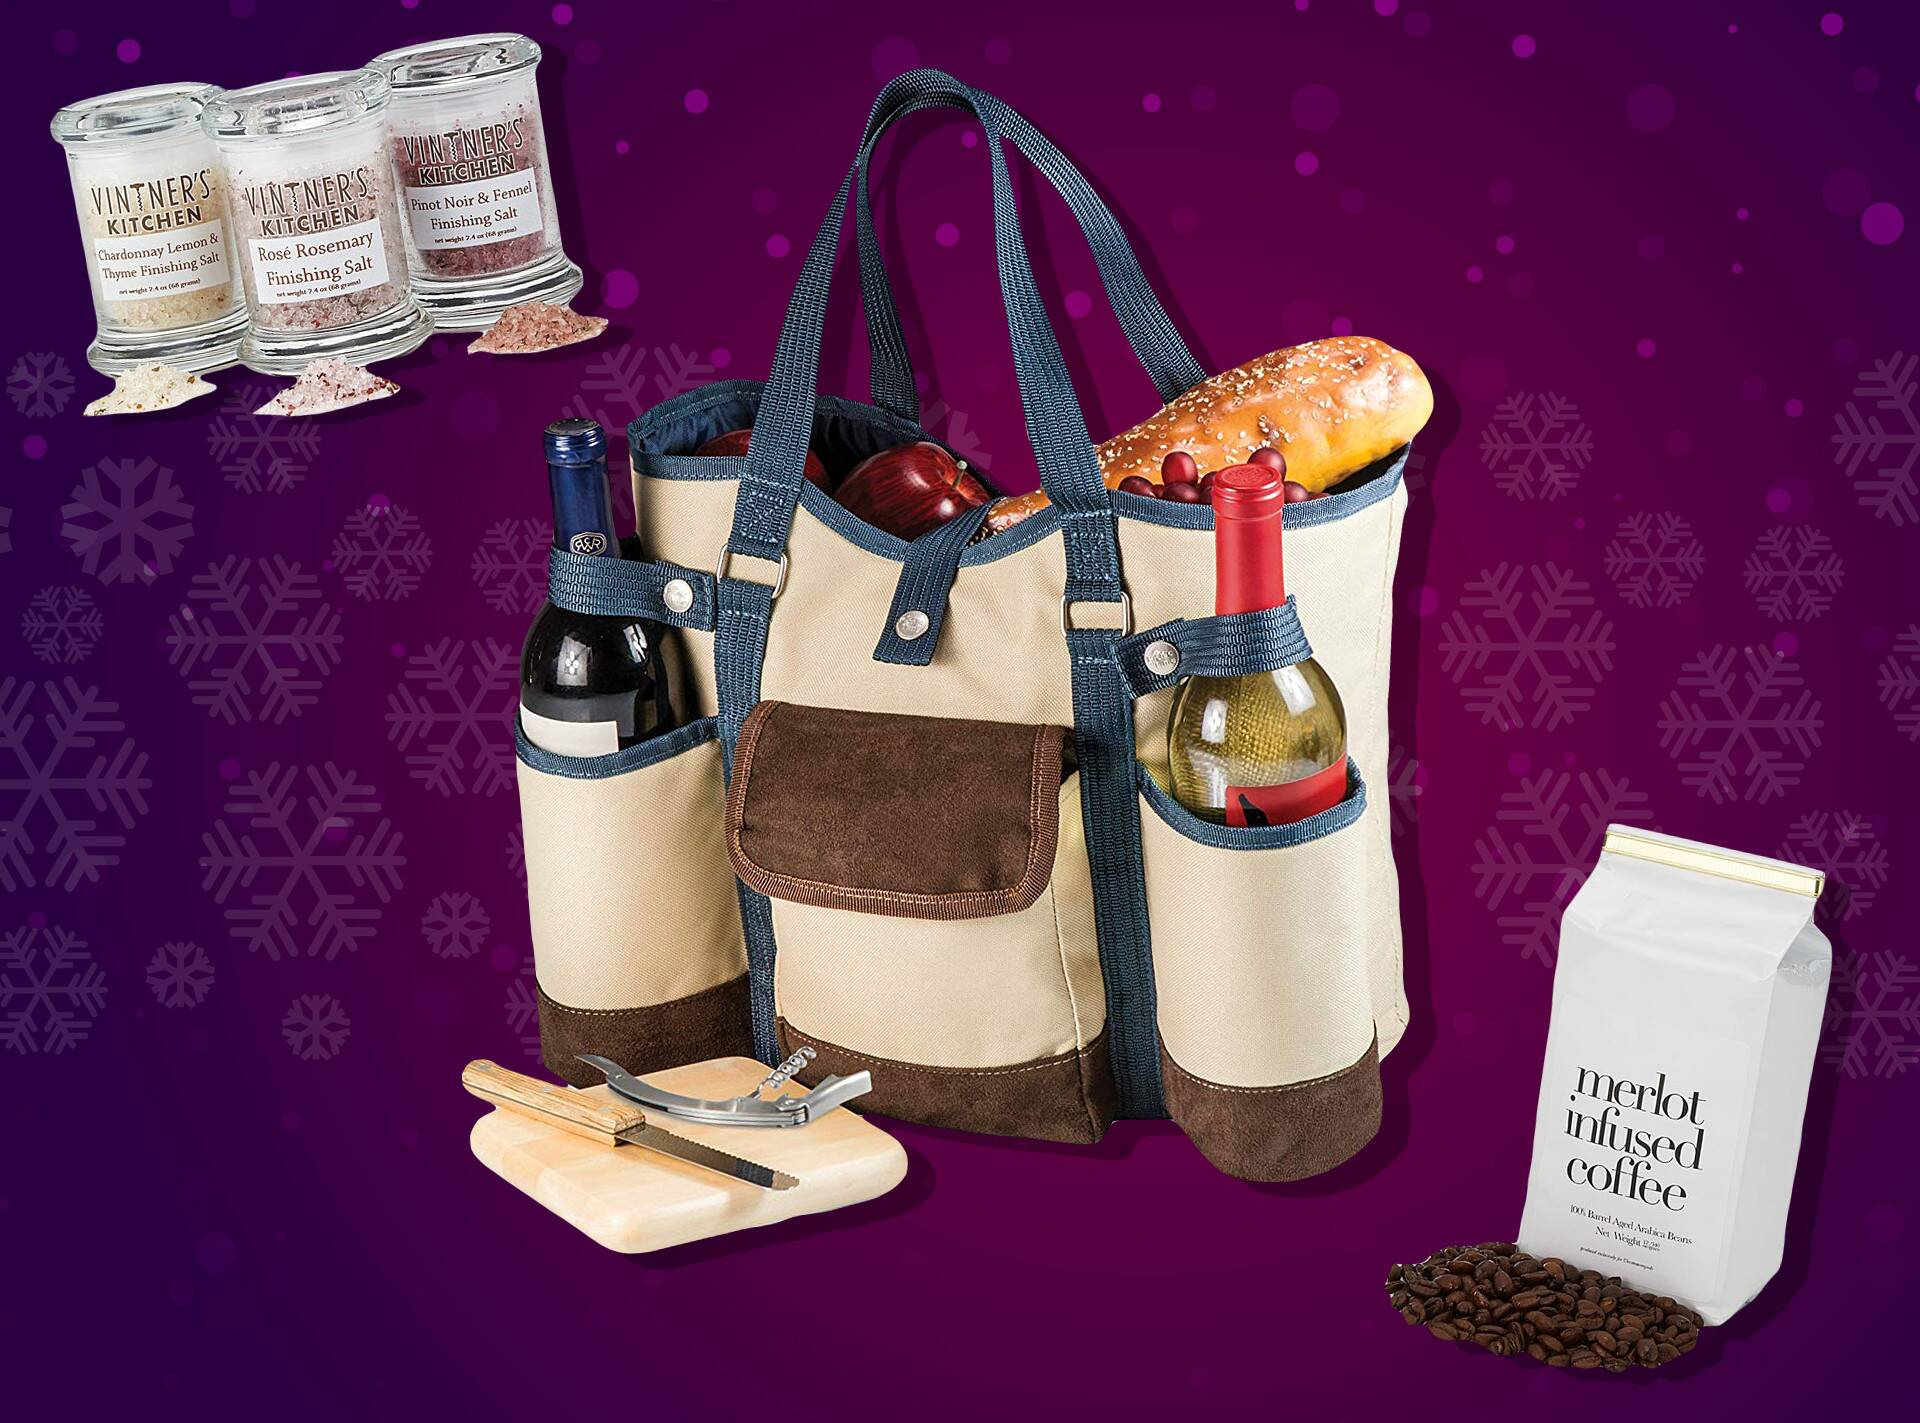 13 Gifts for Wine Lovers